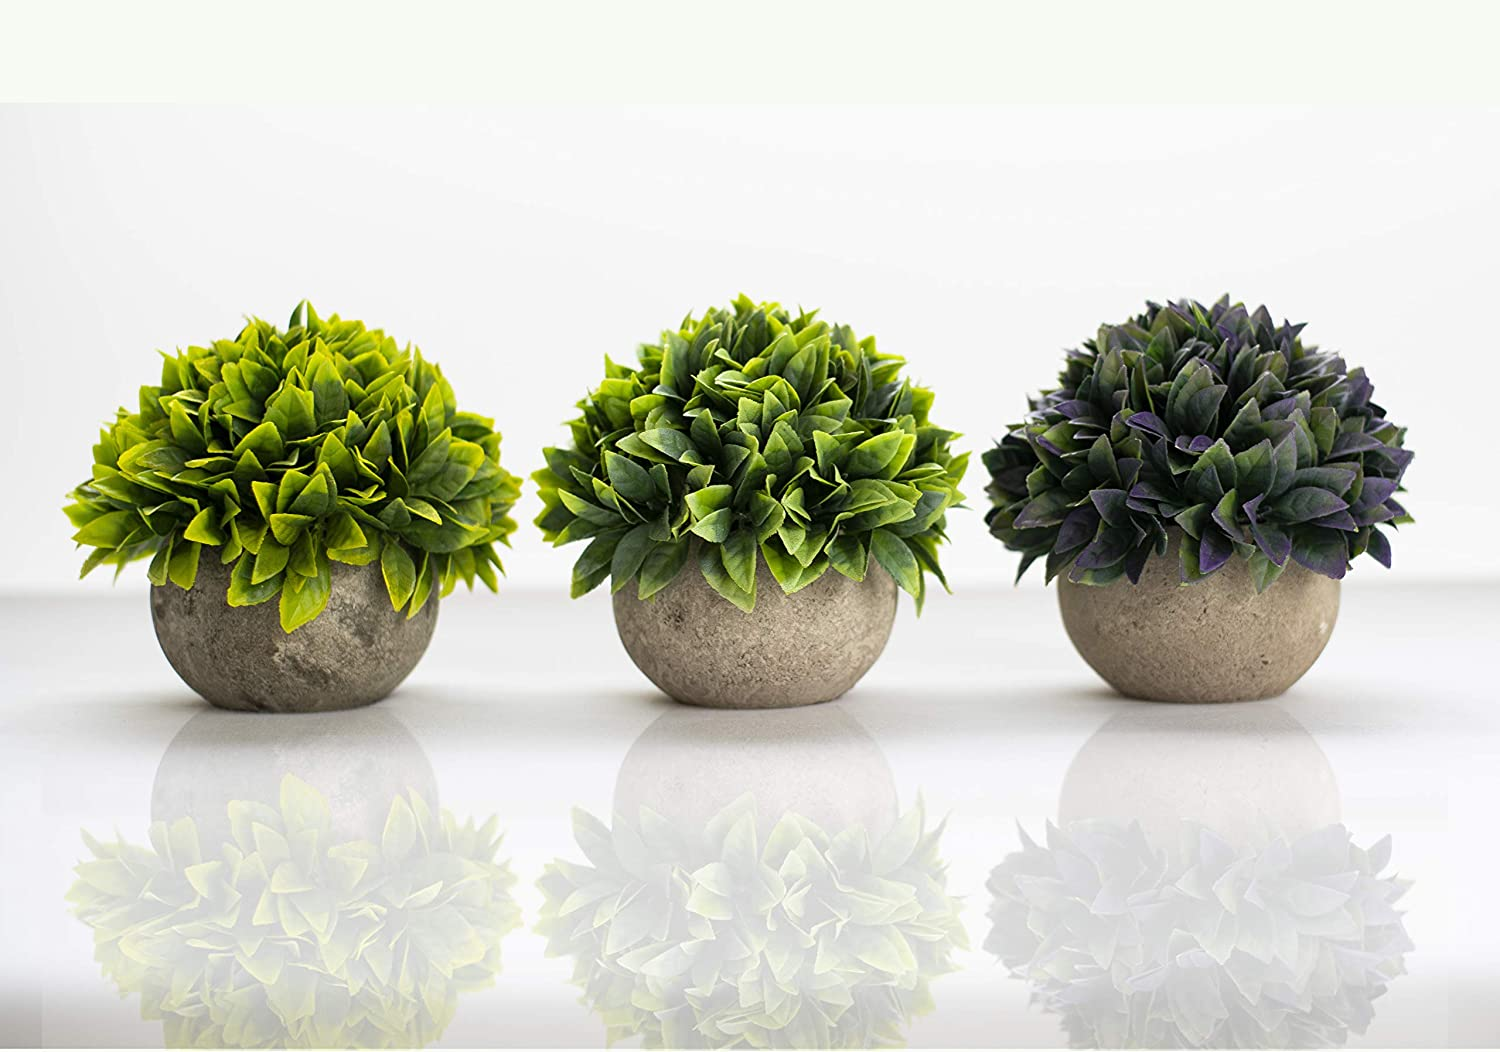 Artificial Mini Fake Plants | for Home, House, Bathroom, Bedroom, Shelf, Mantle, Office Decoration | Decorative Small Faux Green Plastic Plant Decor, Comes with Cement-Like Grey Pot for Rustic Look